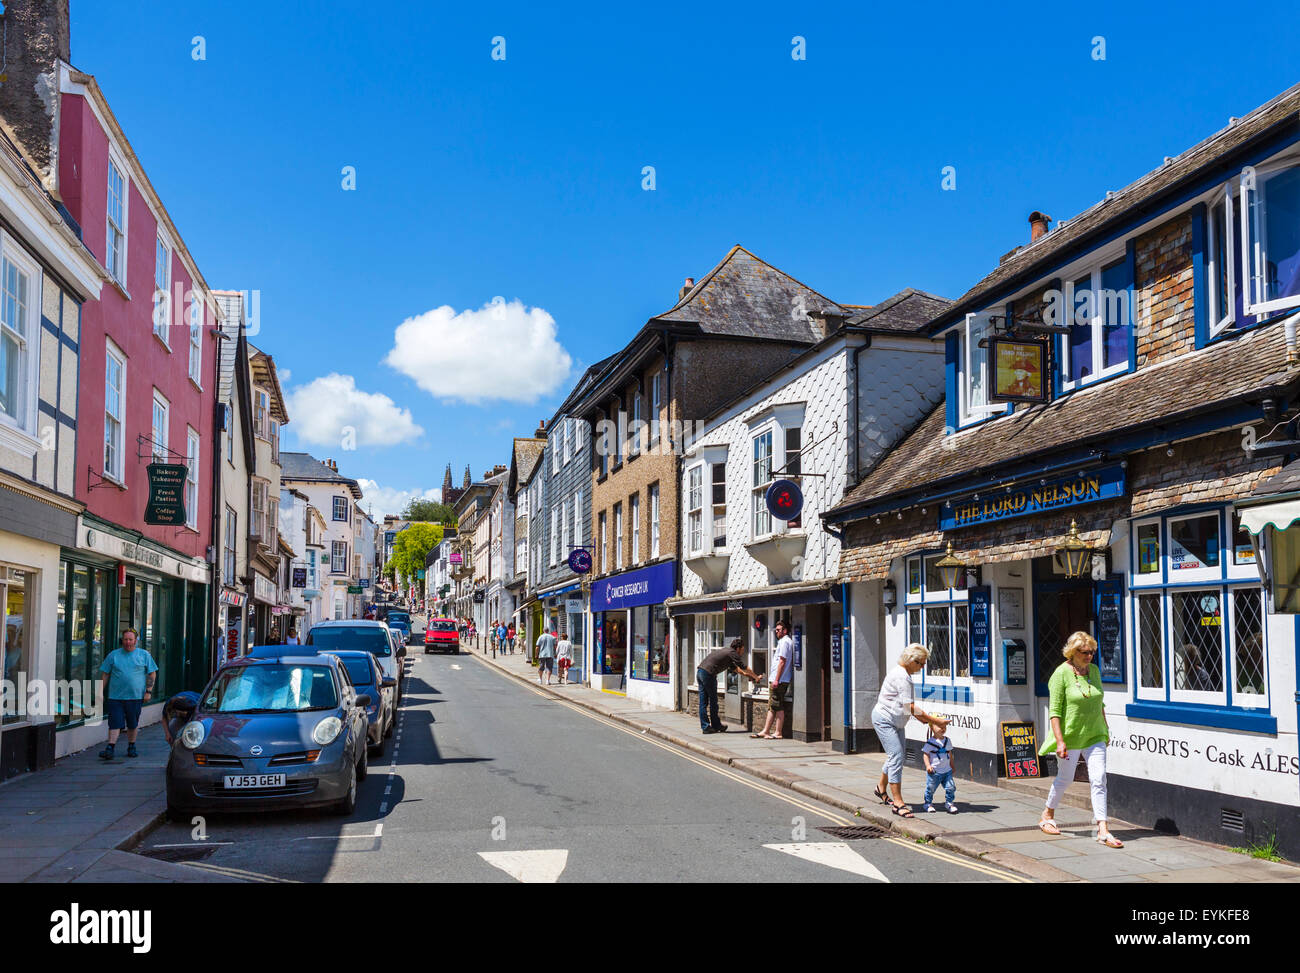 Shops and pub on Fore Street in the town centre, Totnes, Devon, England, UK - Stock Image